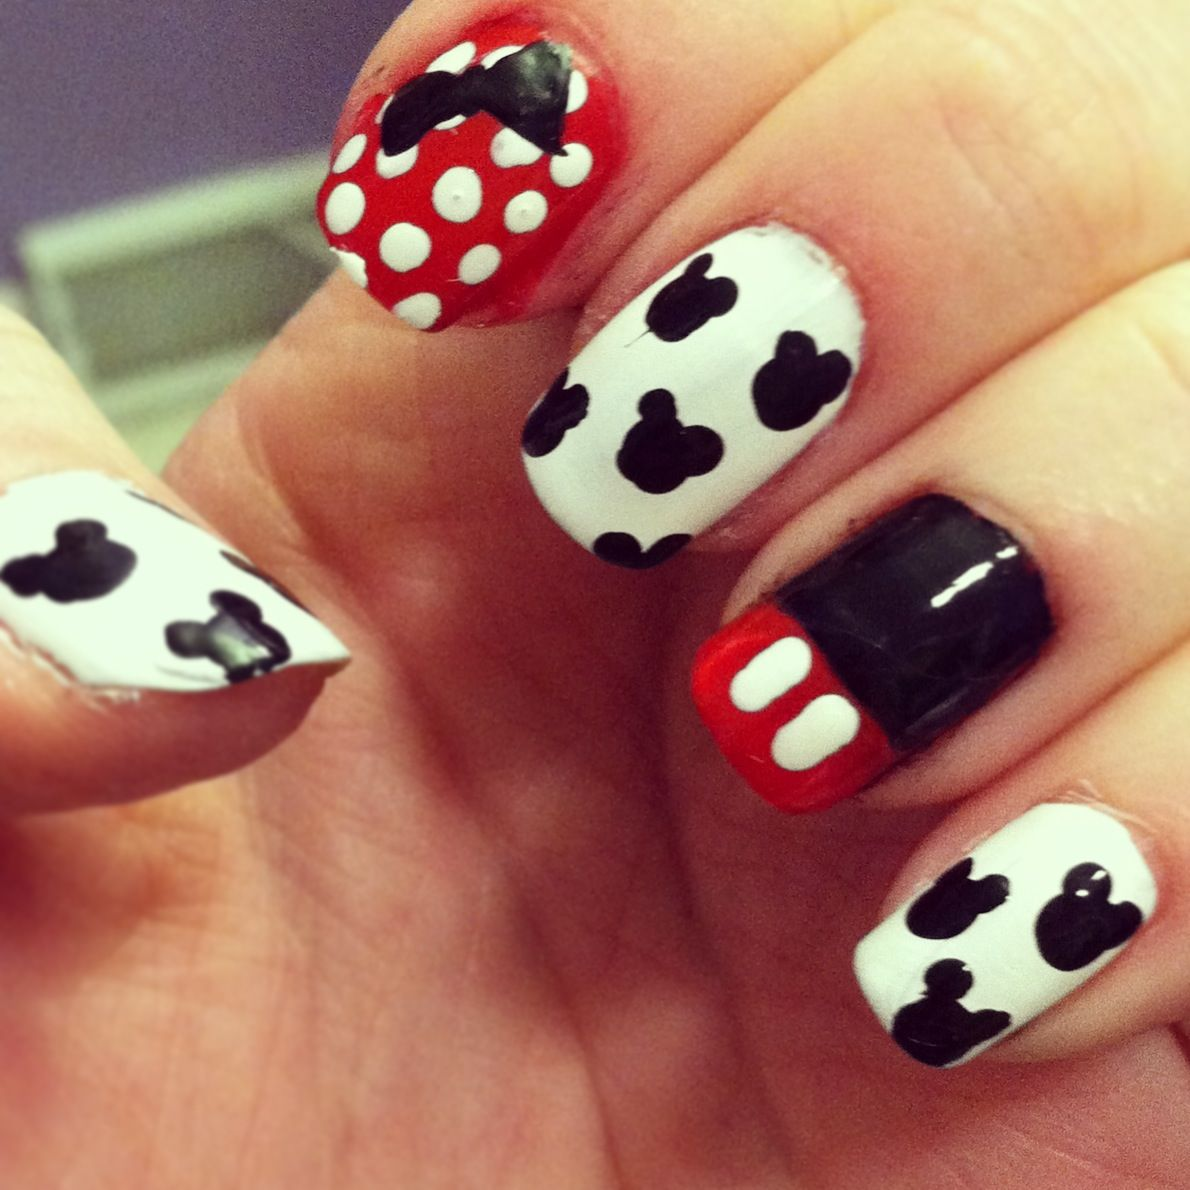 Mickey/Minnie Mouse Nails | My Style | Pinterest | Diseños de uñas